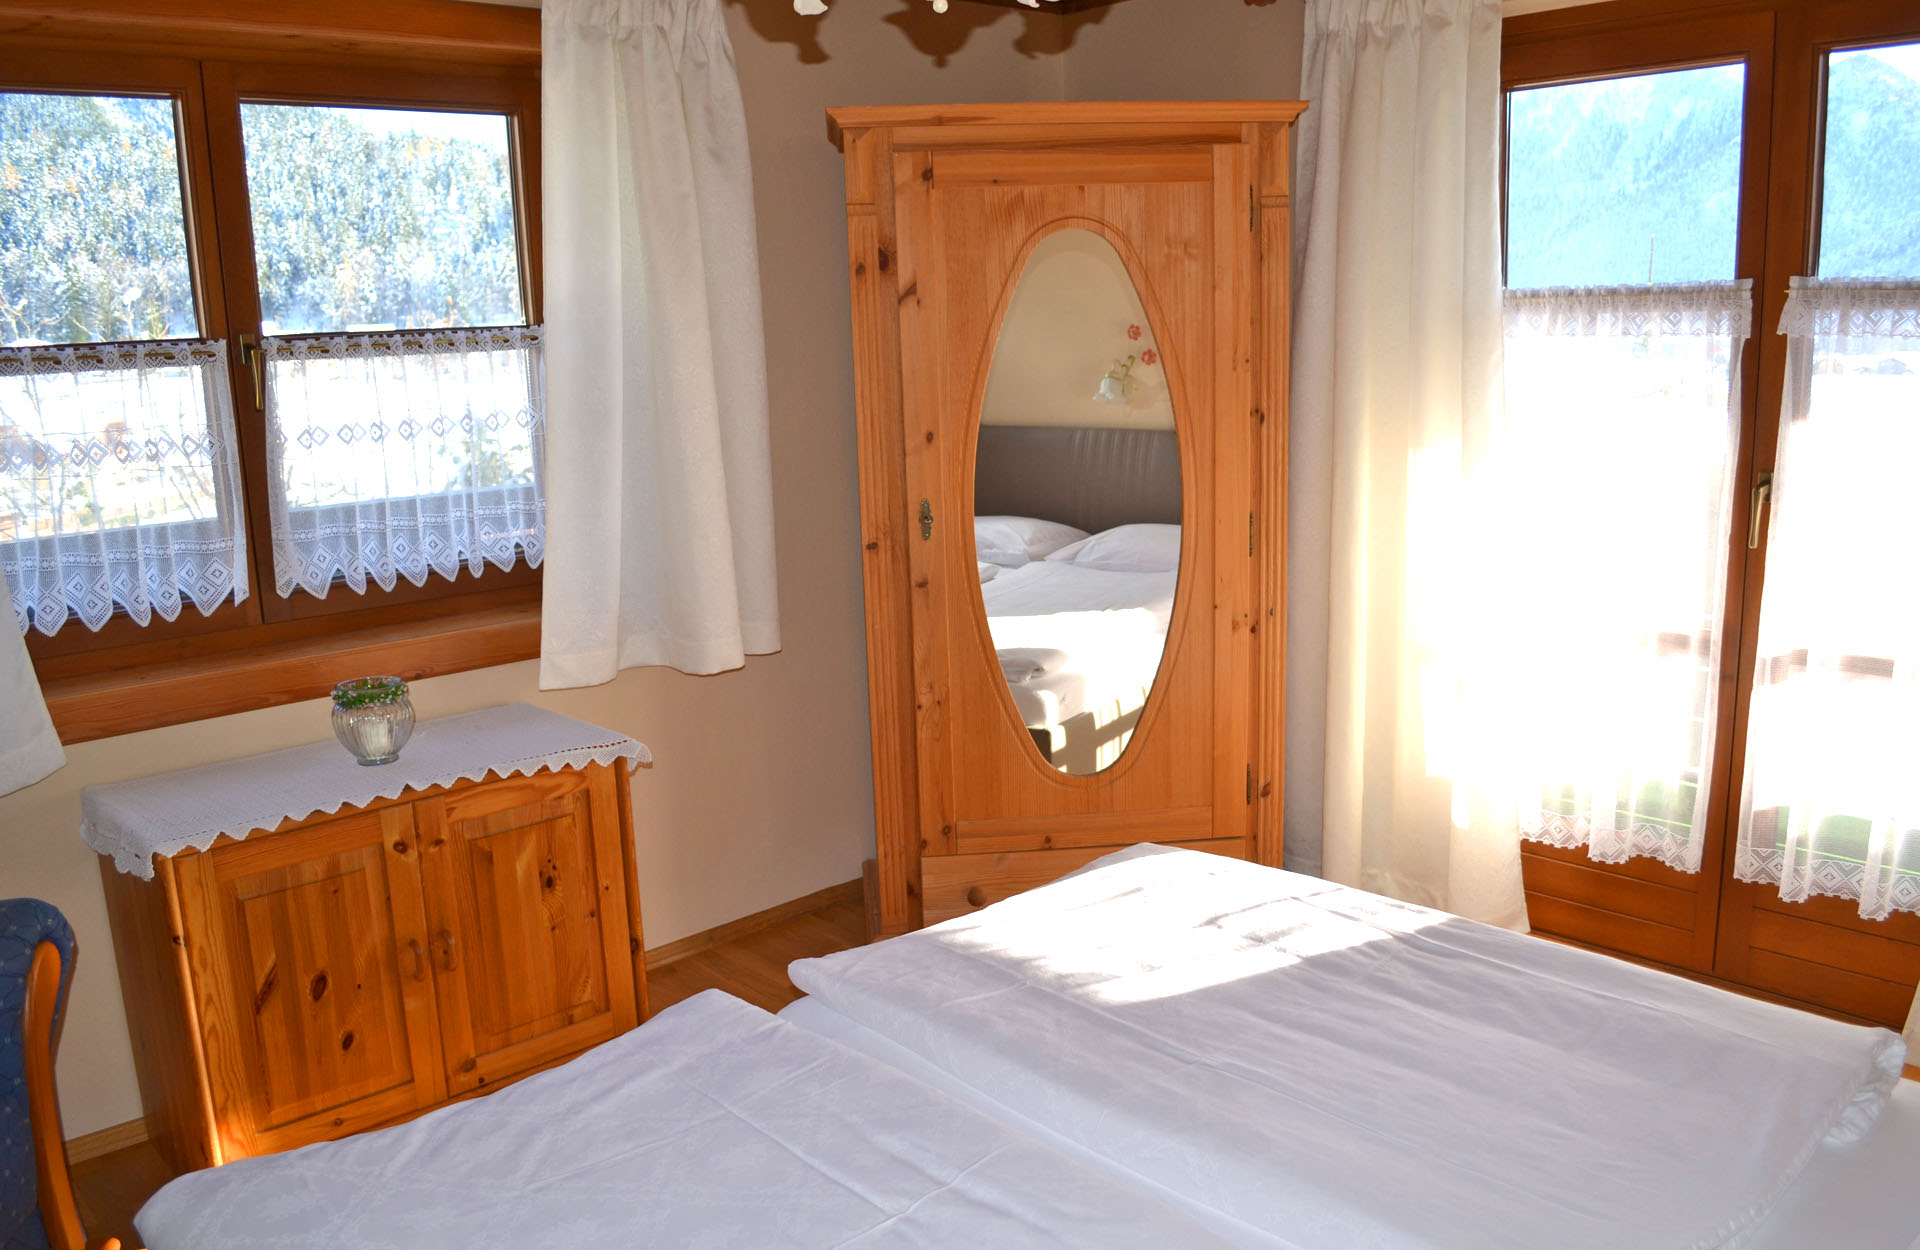 Pension Alpenblick Appartements